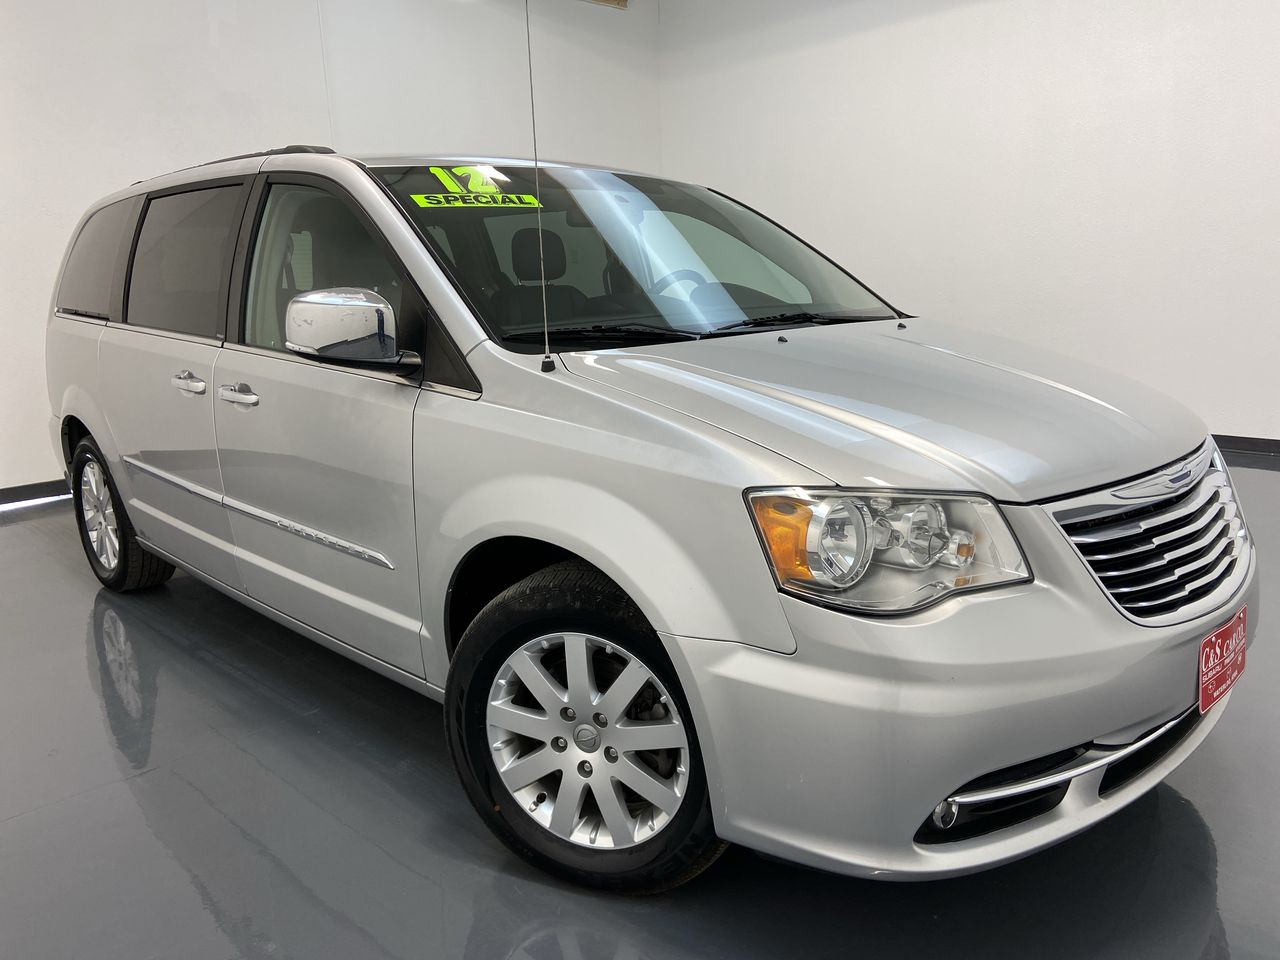 2012 Chrysler Town & Country Wagon LWB  - SB8315B  - C & S Car Company